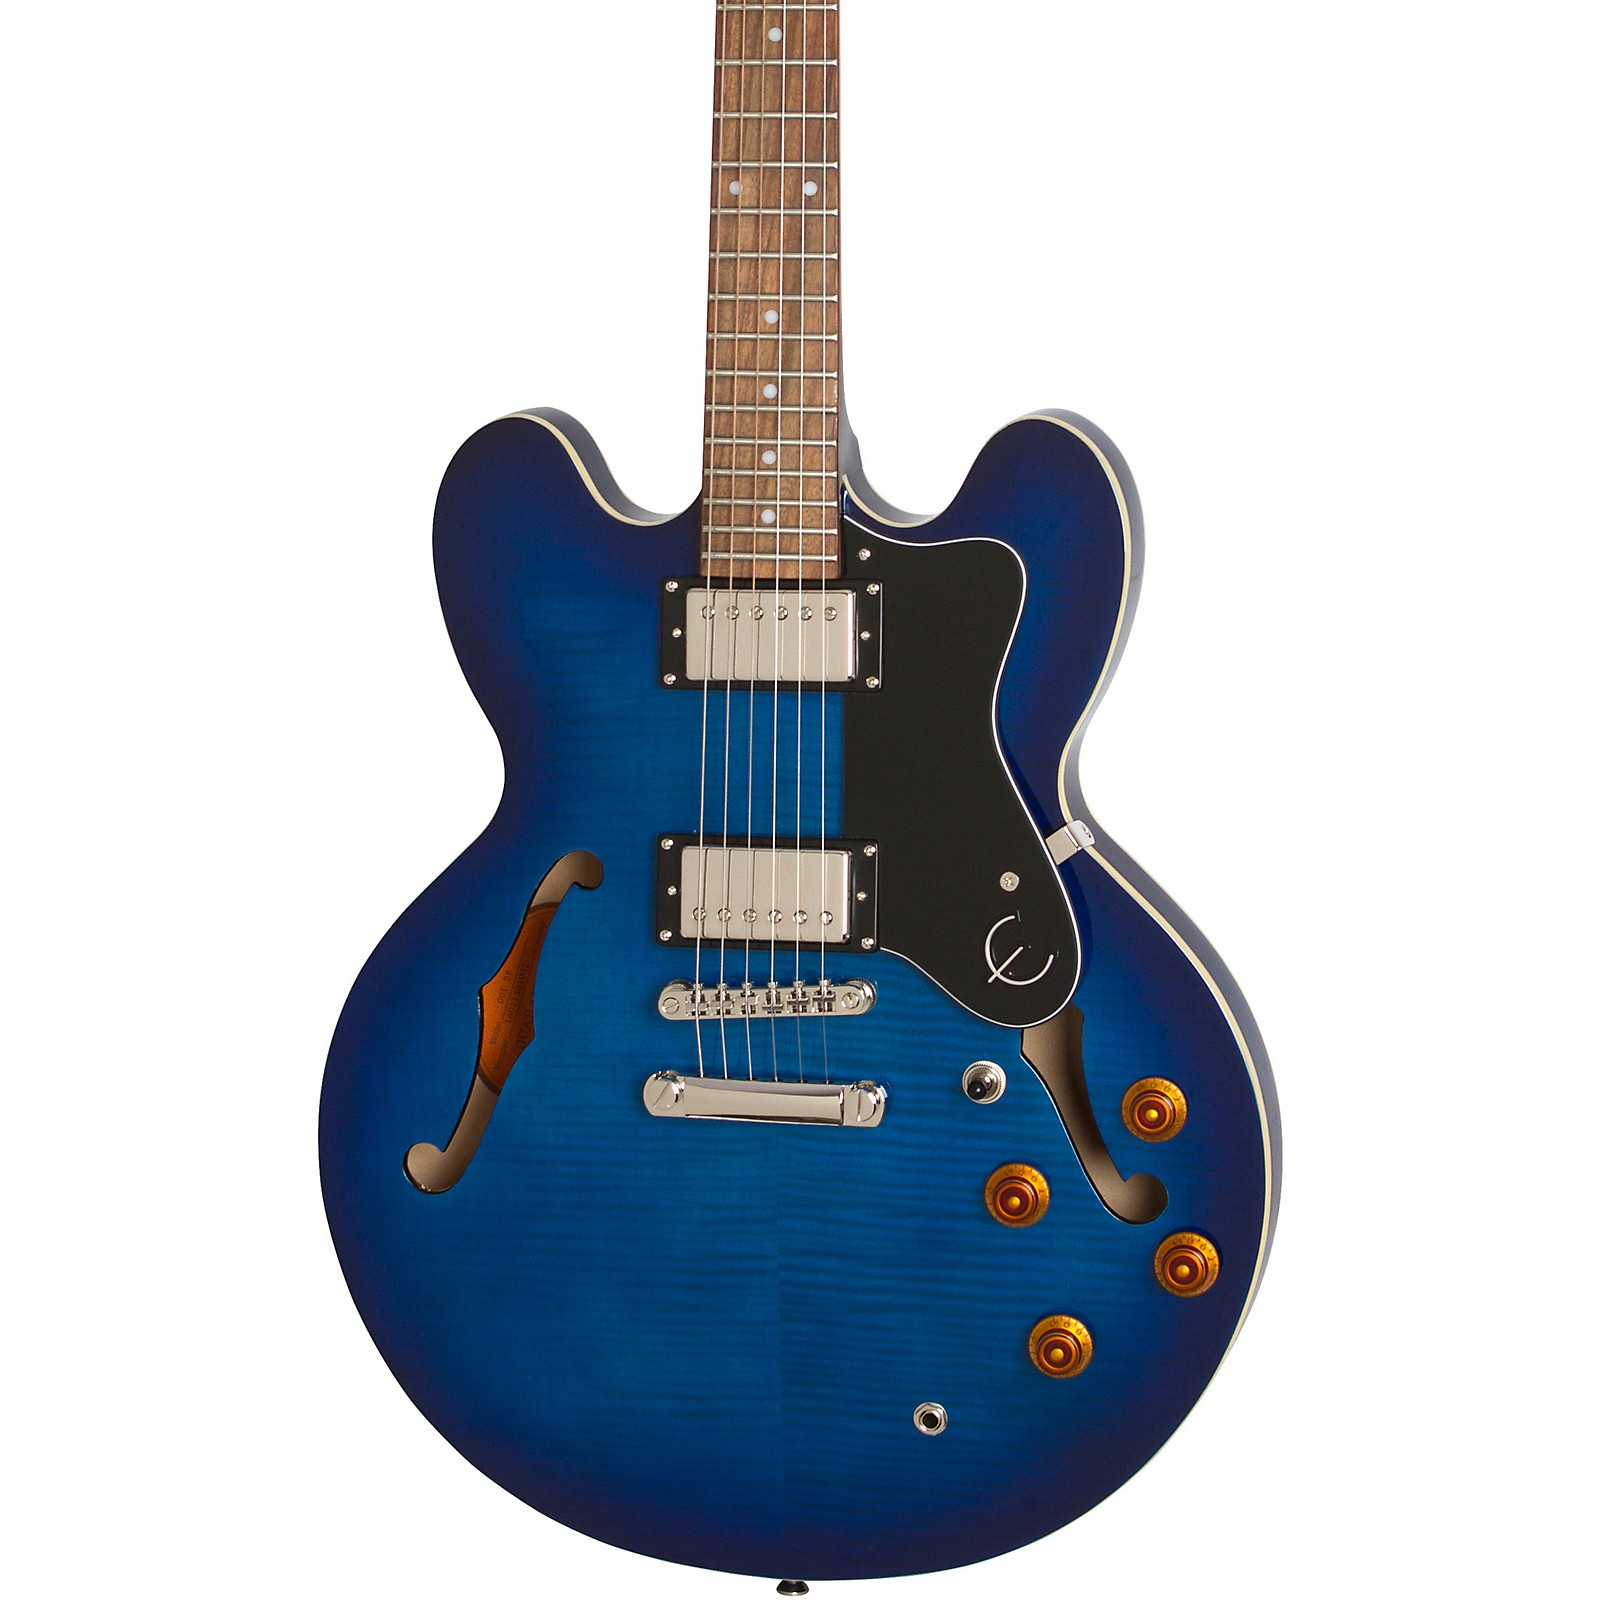 Epiphone Limited-Edition Dot Deluxe Semi-Hollow Electric Guitar